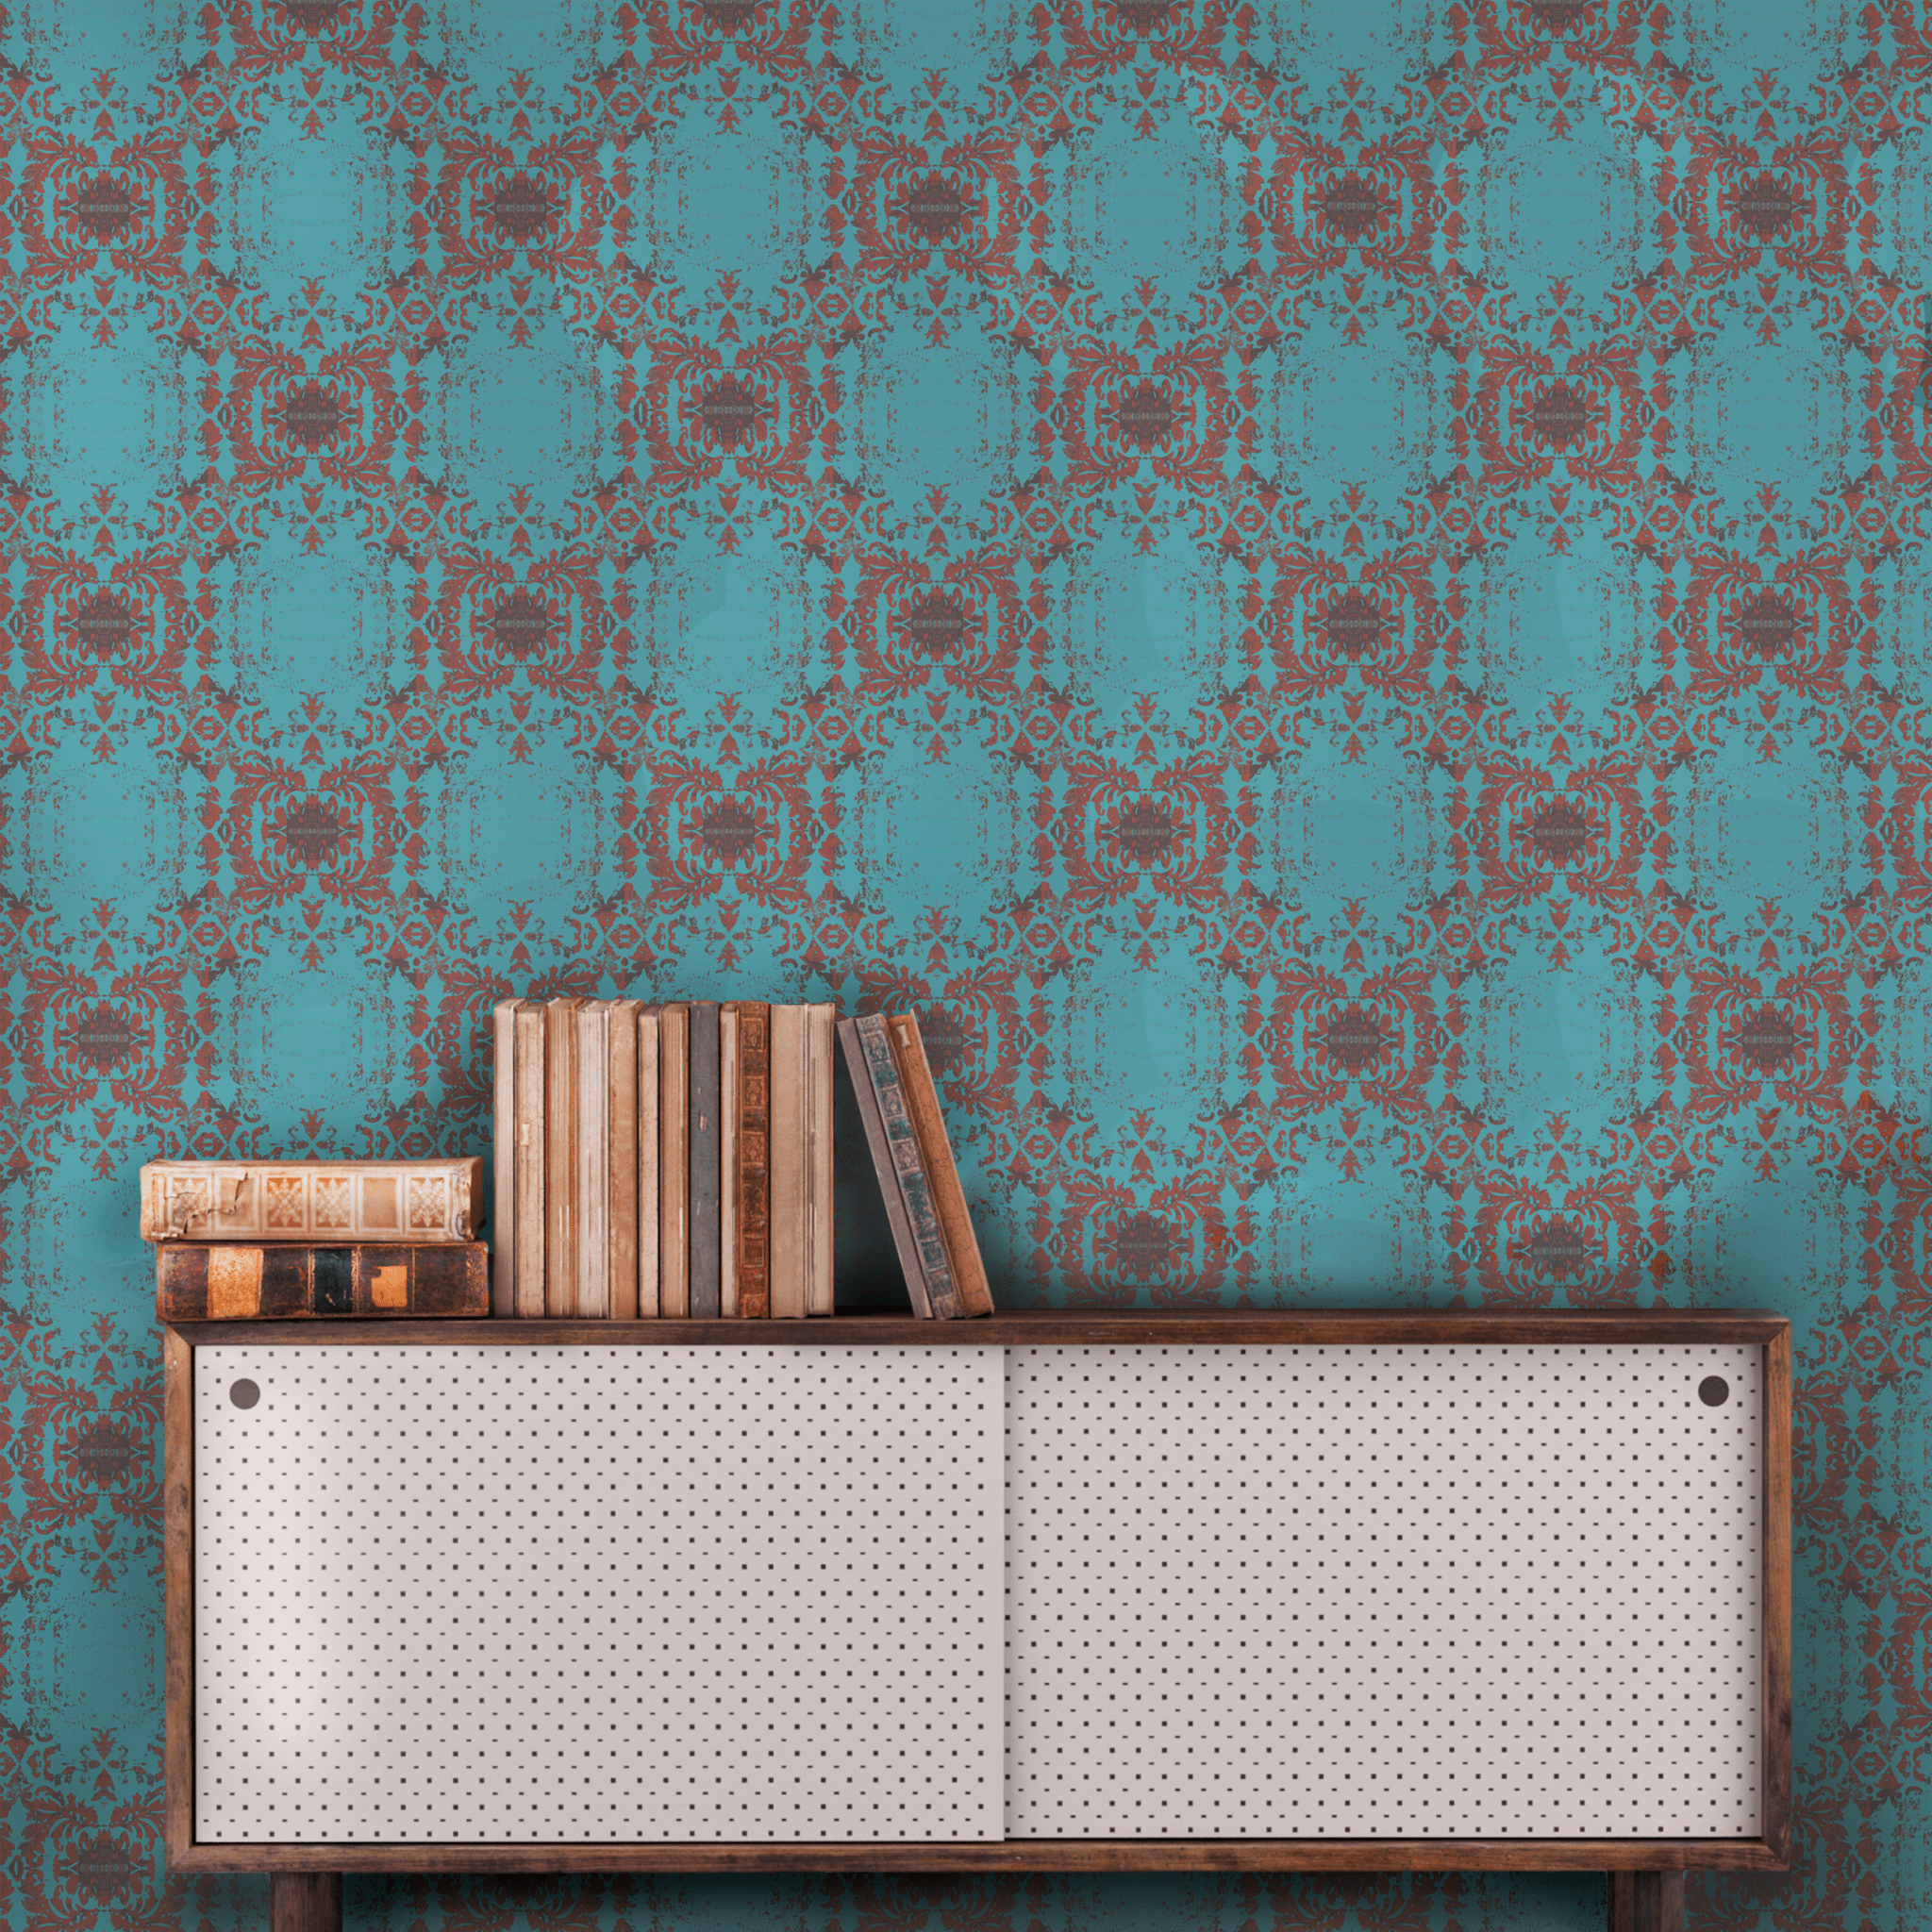 Peel And Stick Wallpaper In Exclusive Smithhonig Designer Patterns Peel And Stick Wallpaper Stick On Wallpaper Damask Wallpaper